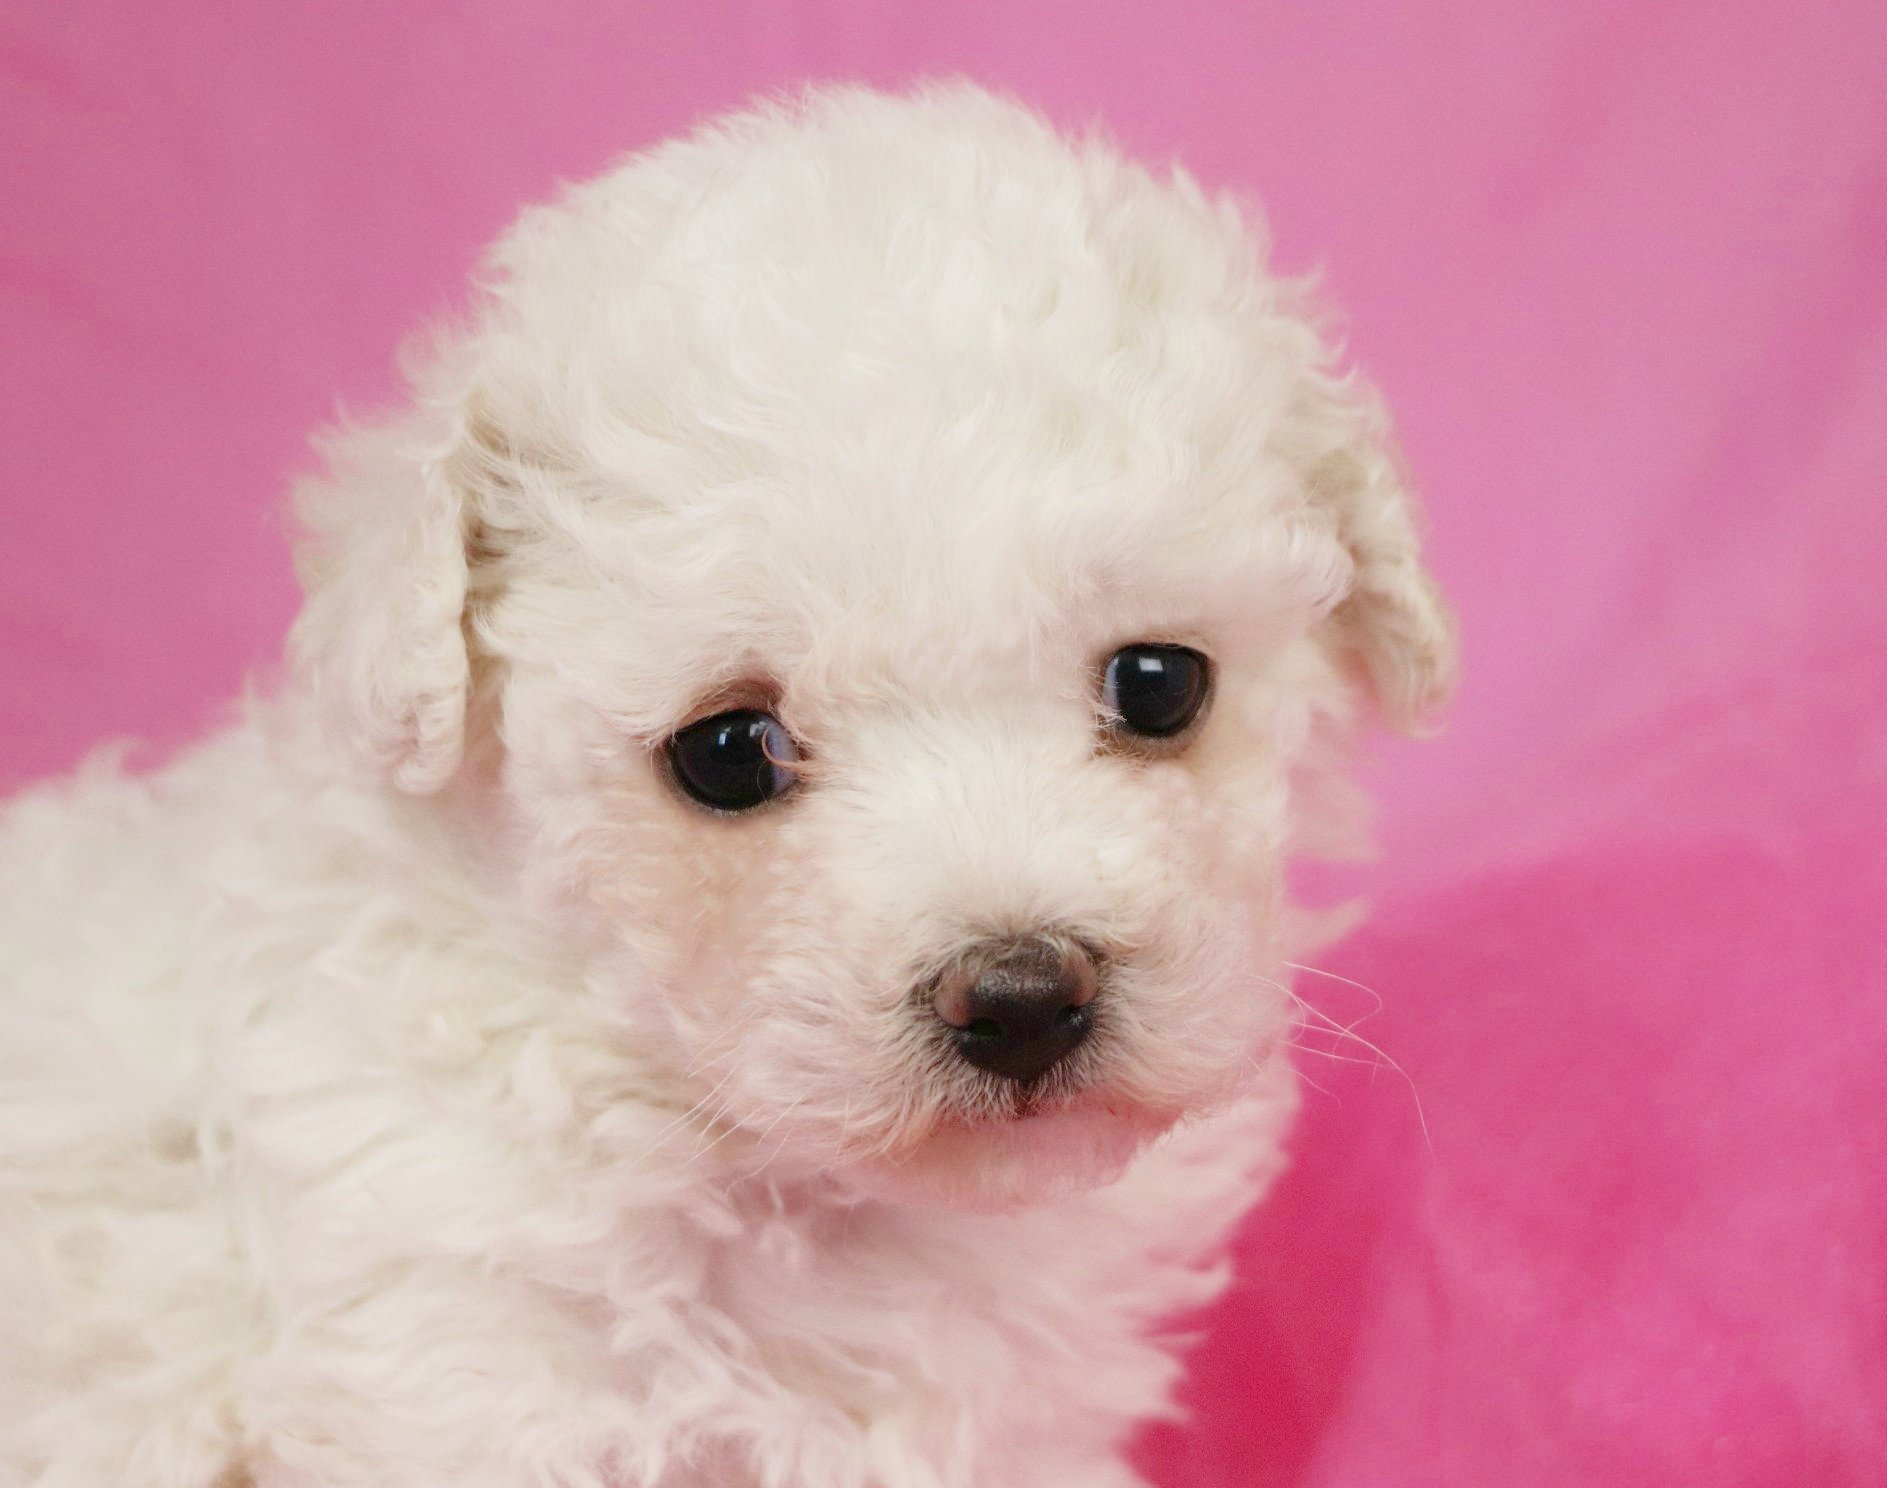 Free photo: Bichon Frise Puppy - Small, White, Puppy - Free Download